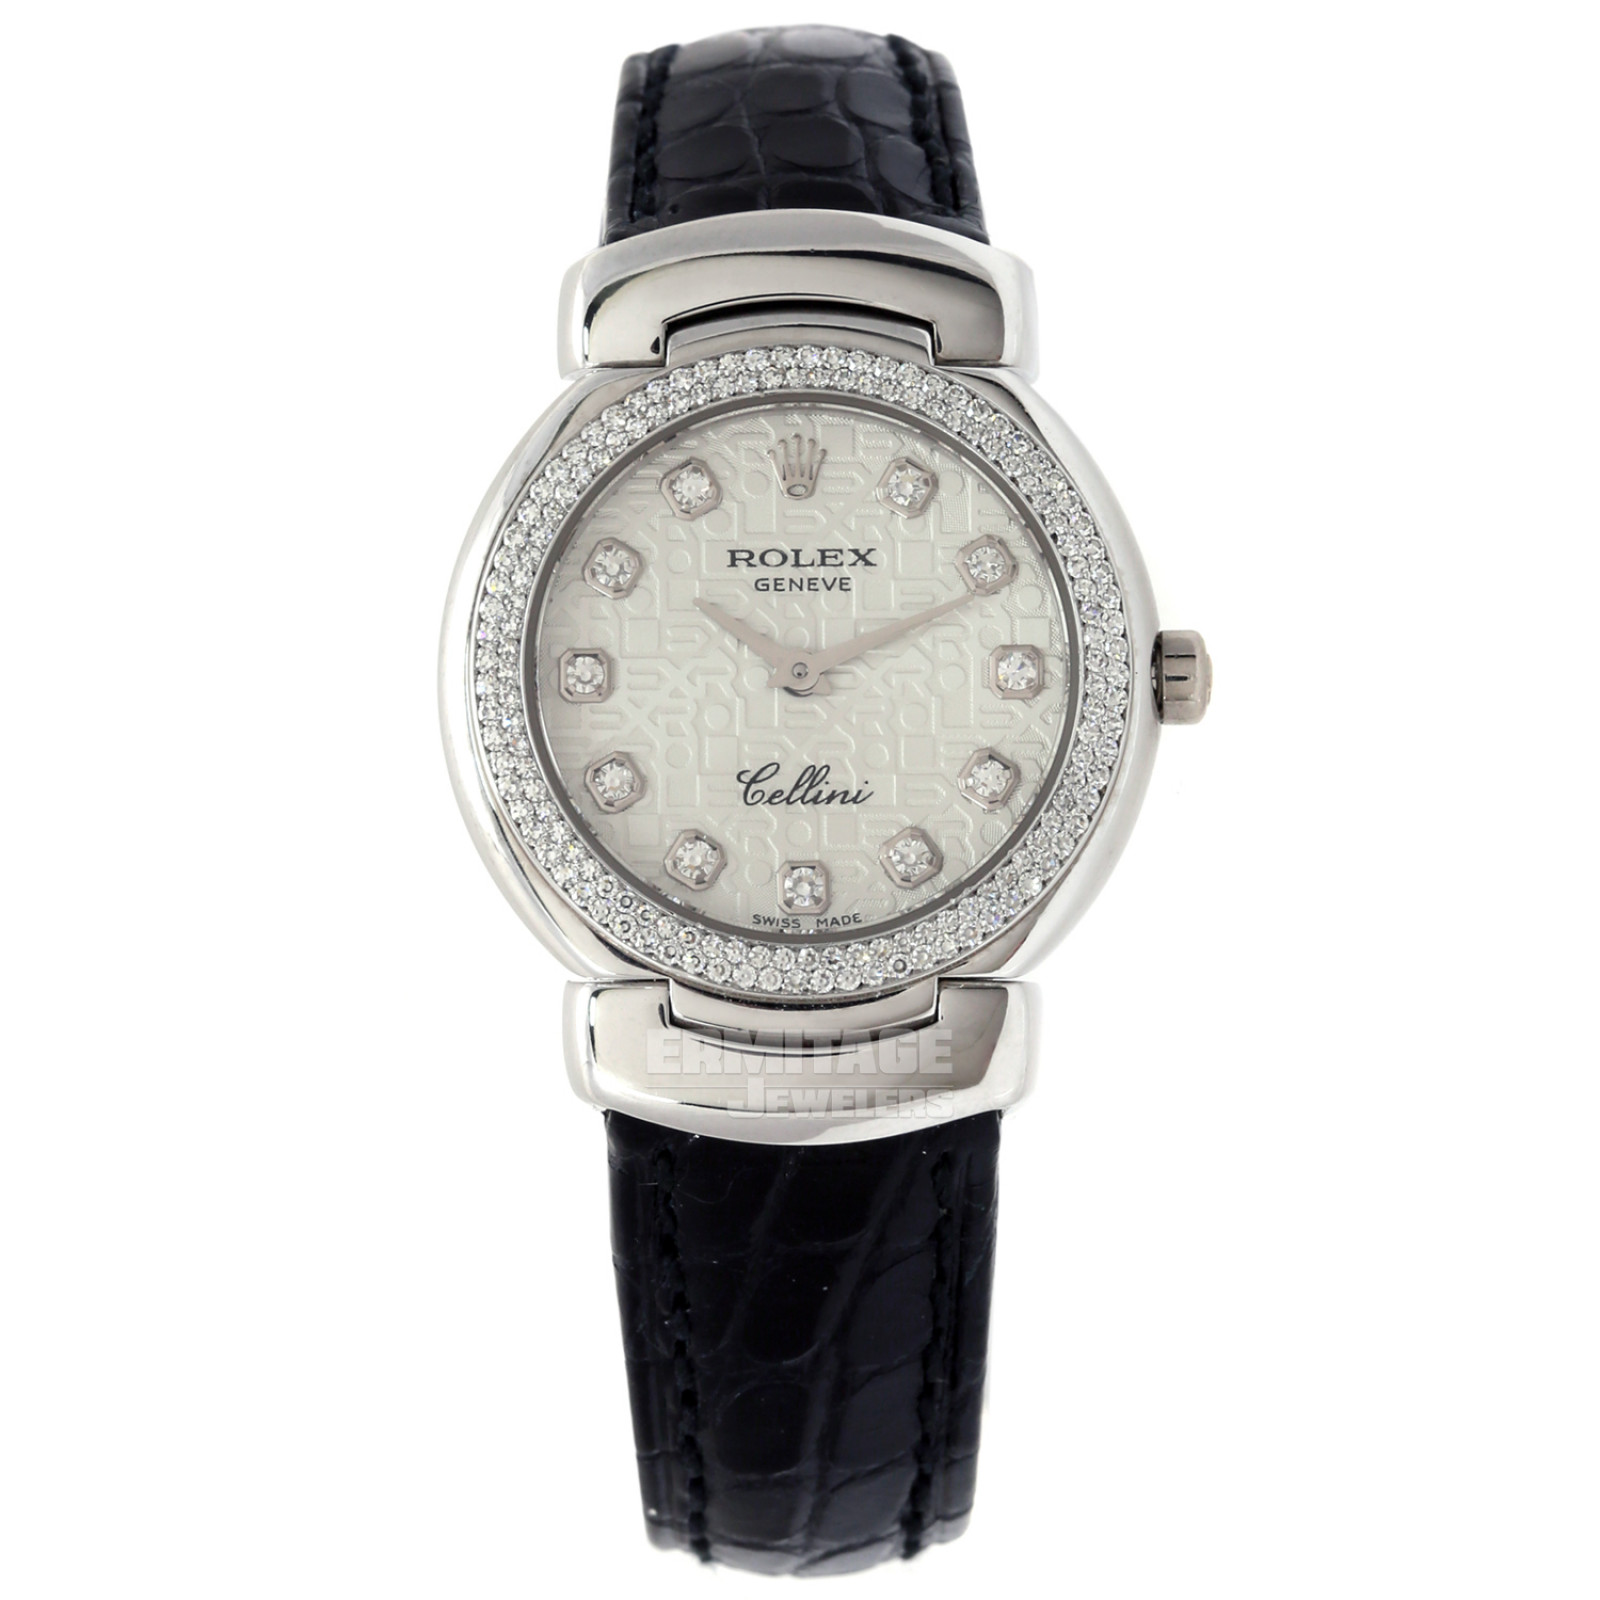 Rolex Cellini 6671 with Silver Dial